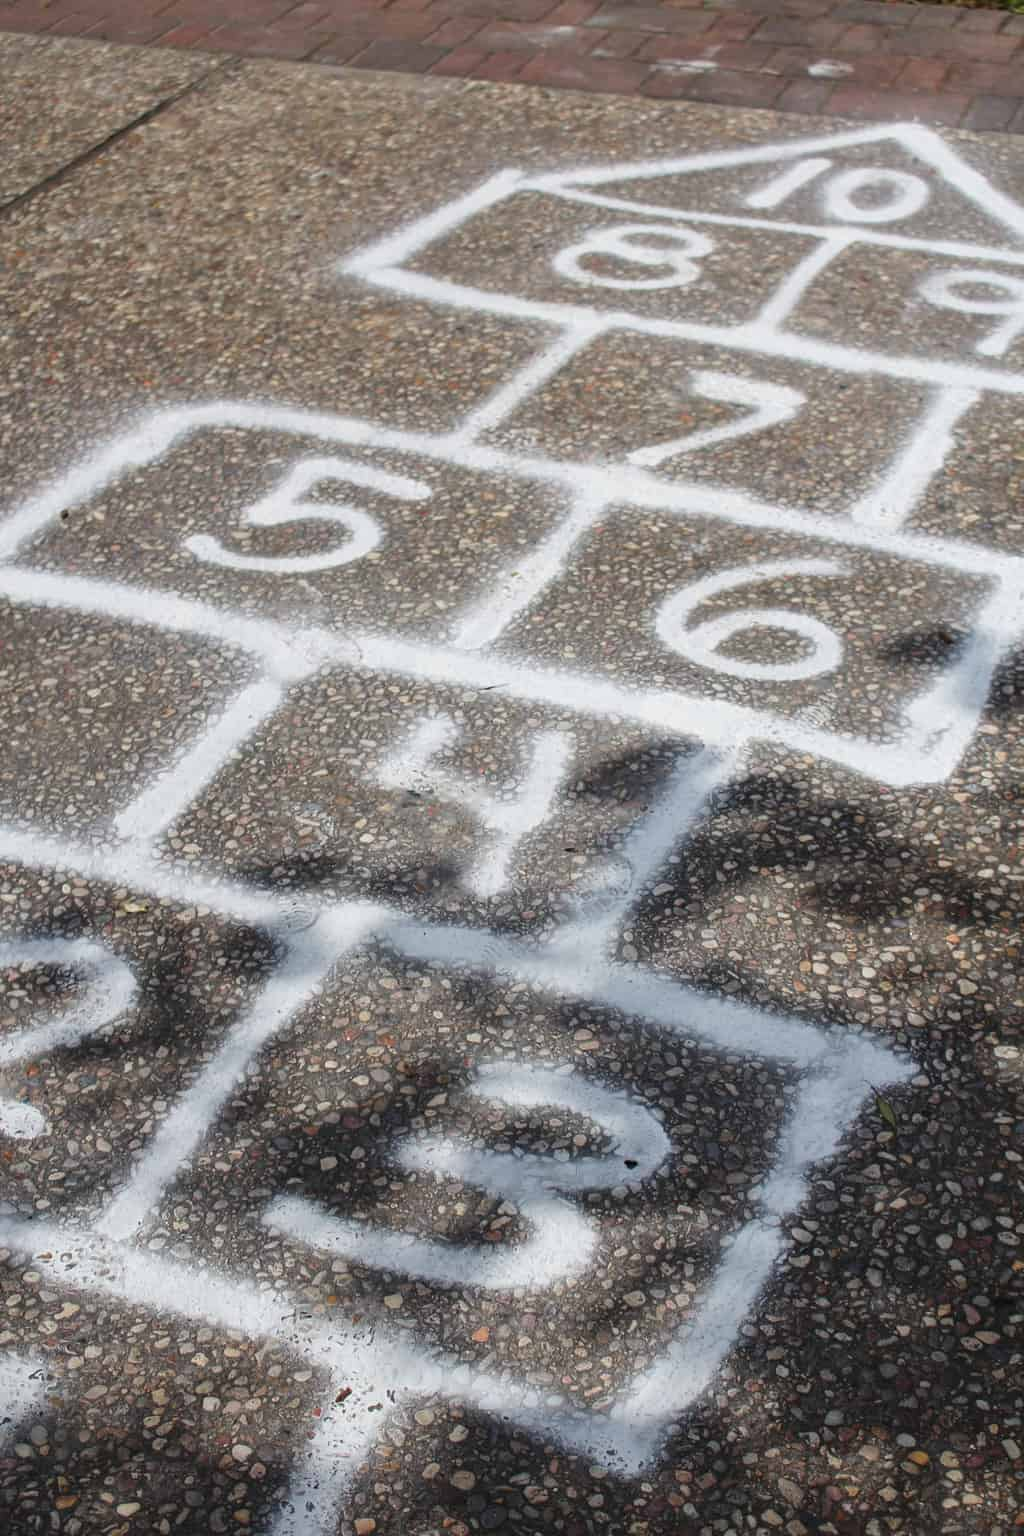 Spraychalk hopscotch game